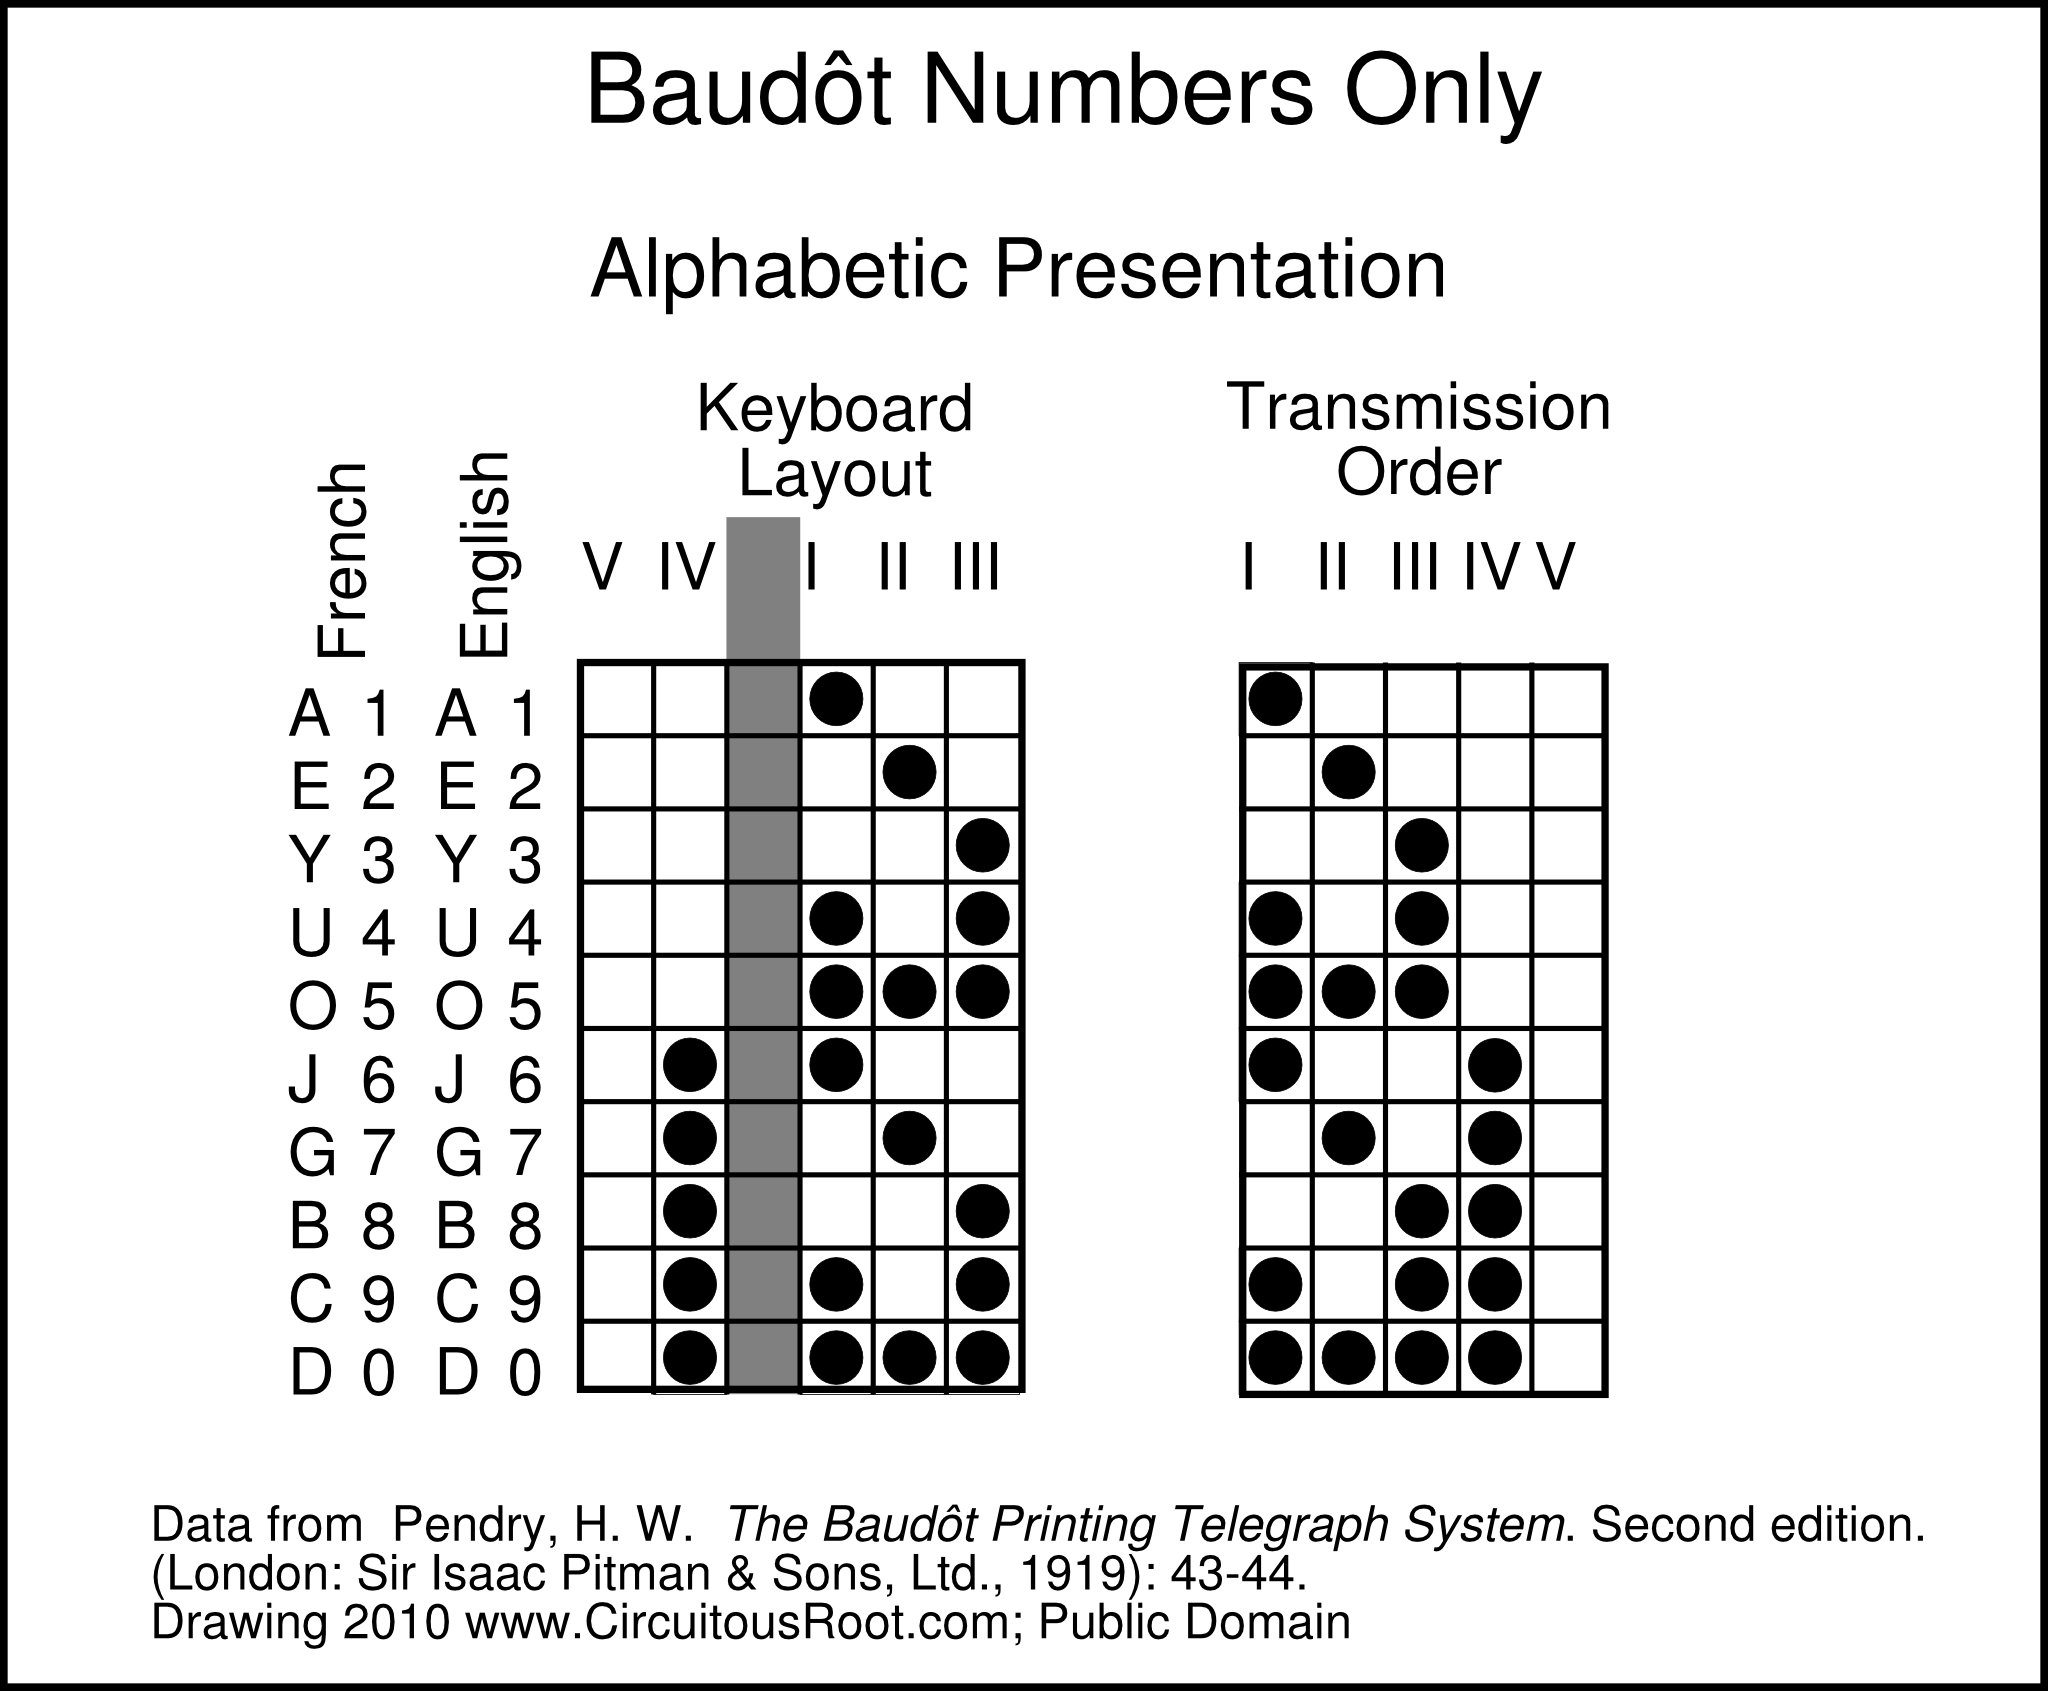 Some printing telegraph codes as products of their technologies baudt code presented alphabetically in keyboard order biocorpaavc